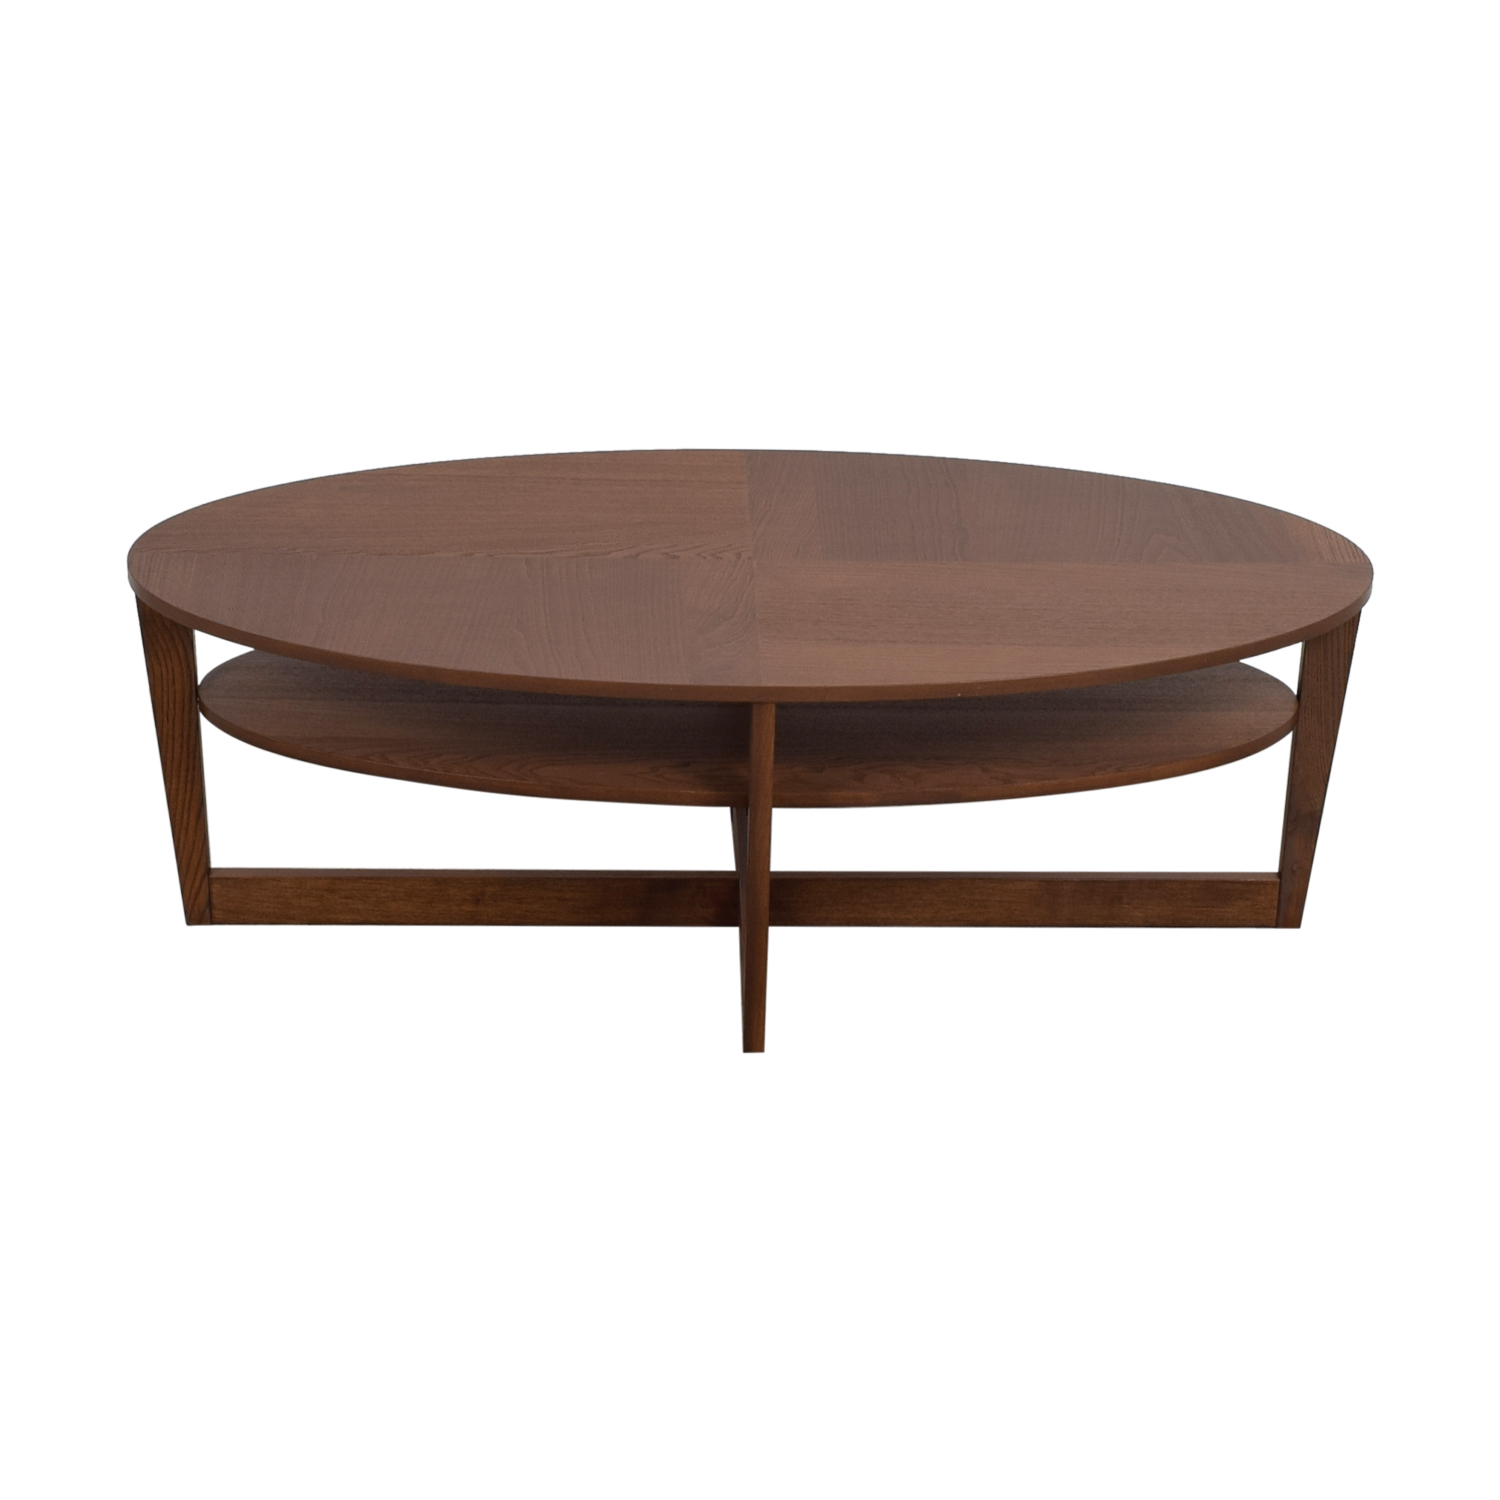 IKEA IKEA Oval Coffee Table used